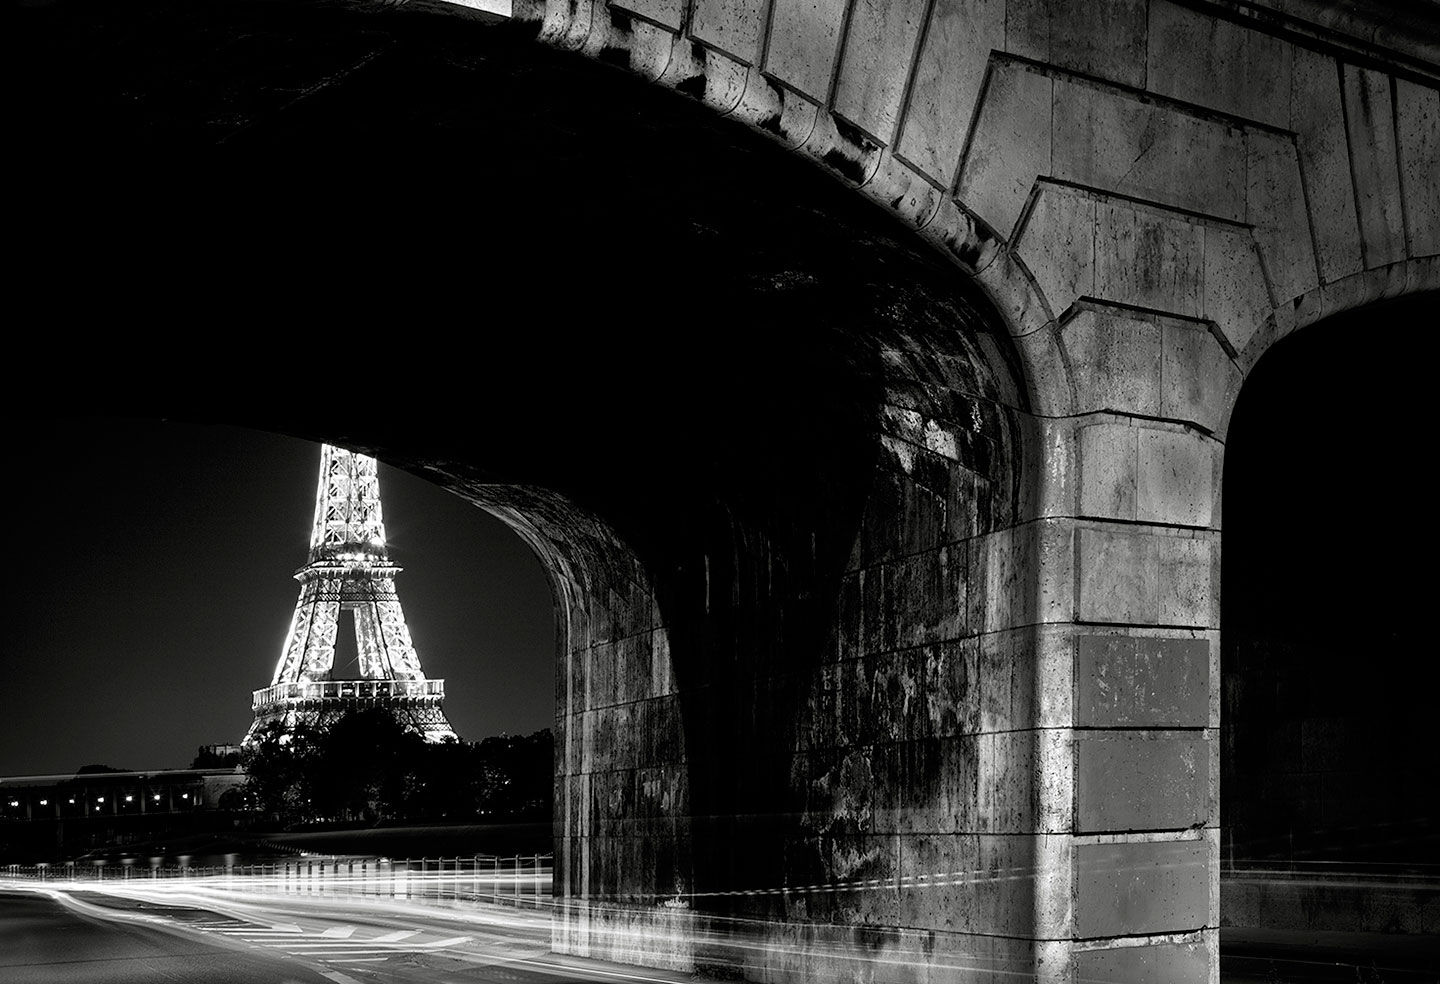 Eiffel Tower and Pont de Bir-Hakeim 2 of 6